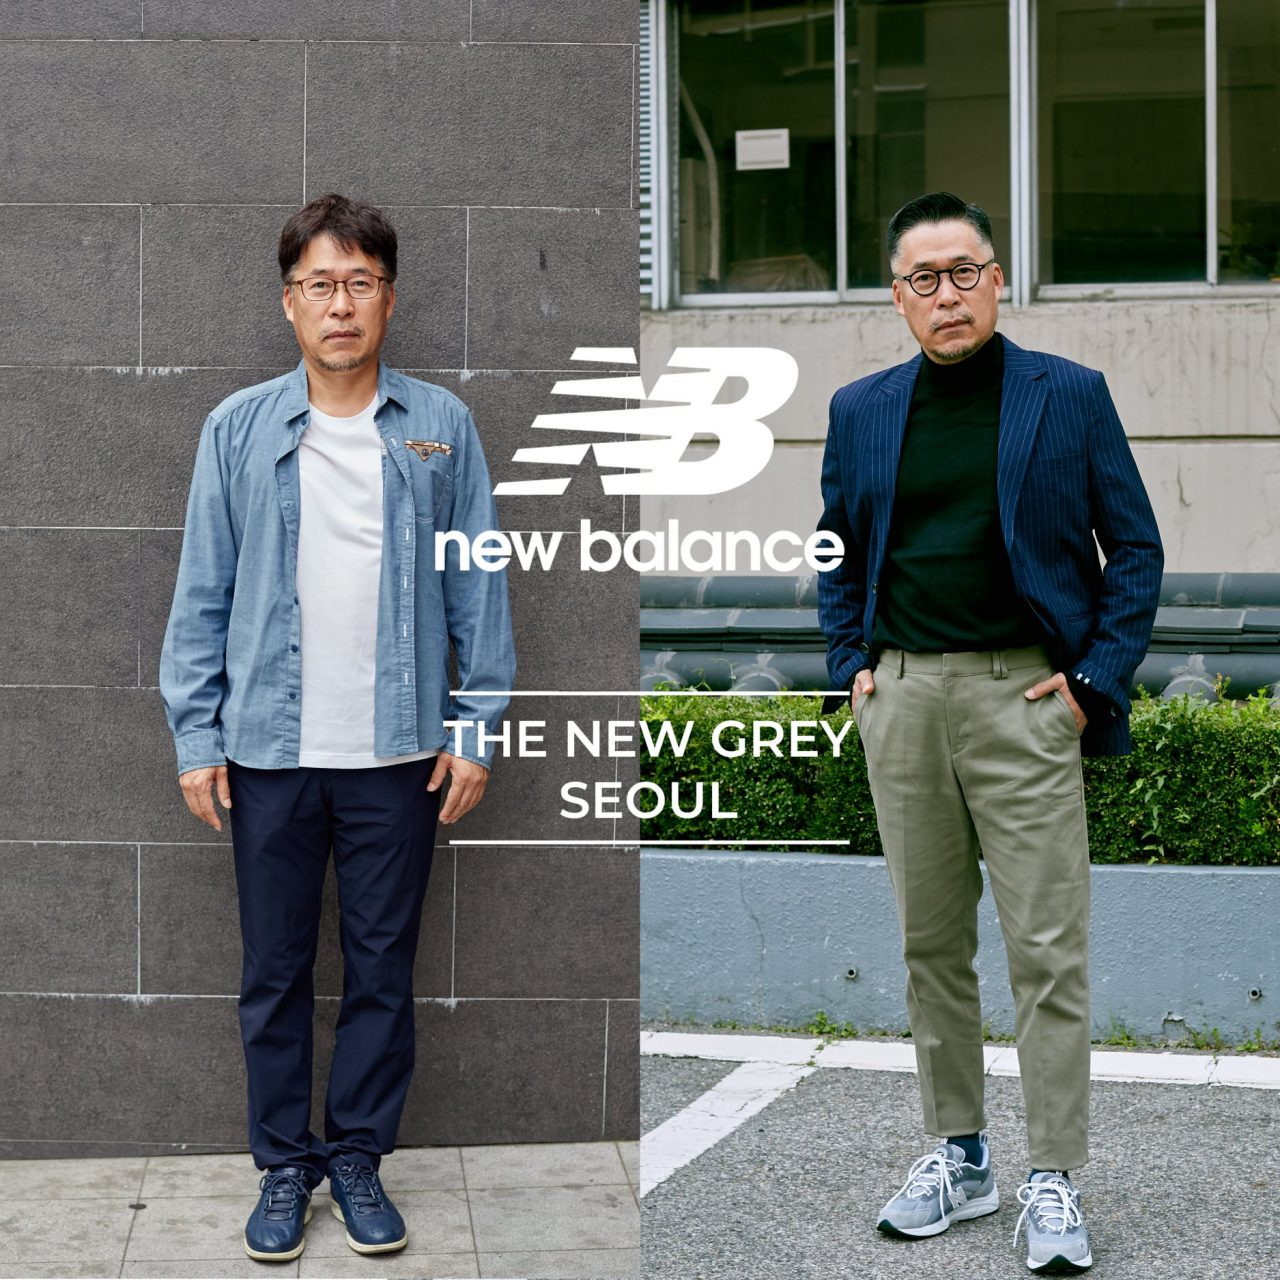 New Balance - The New Grey Seoul